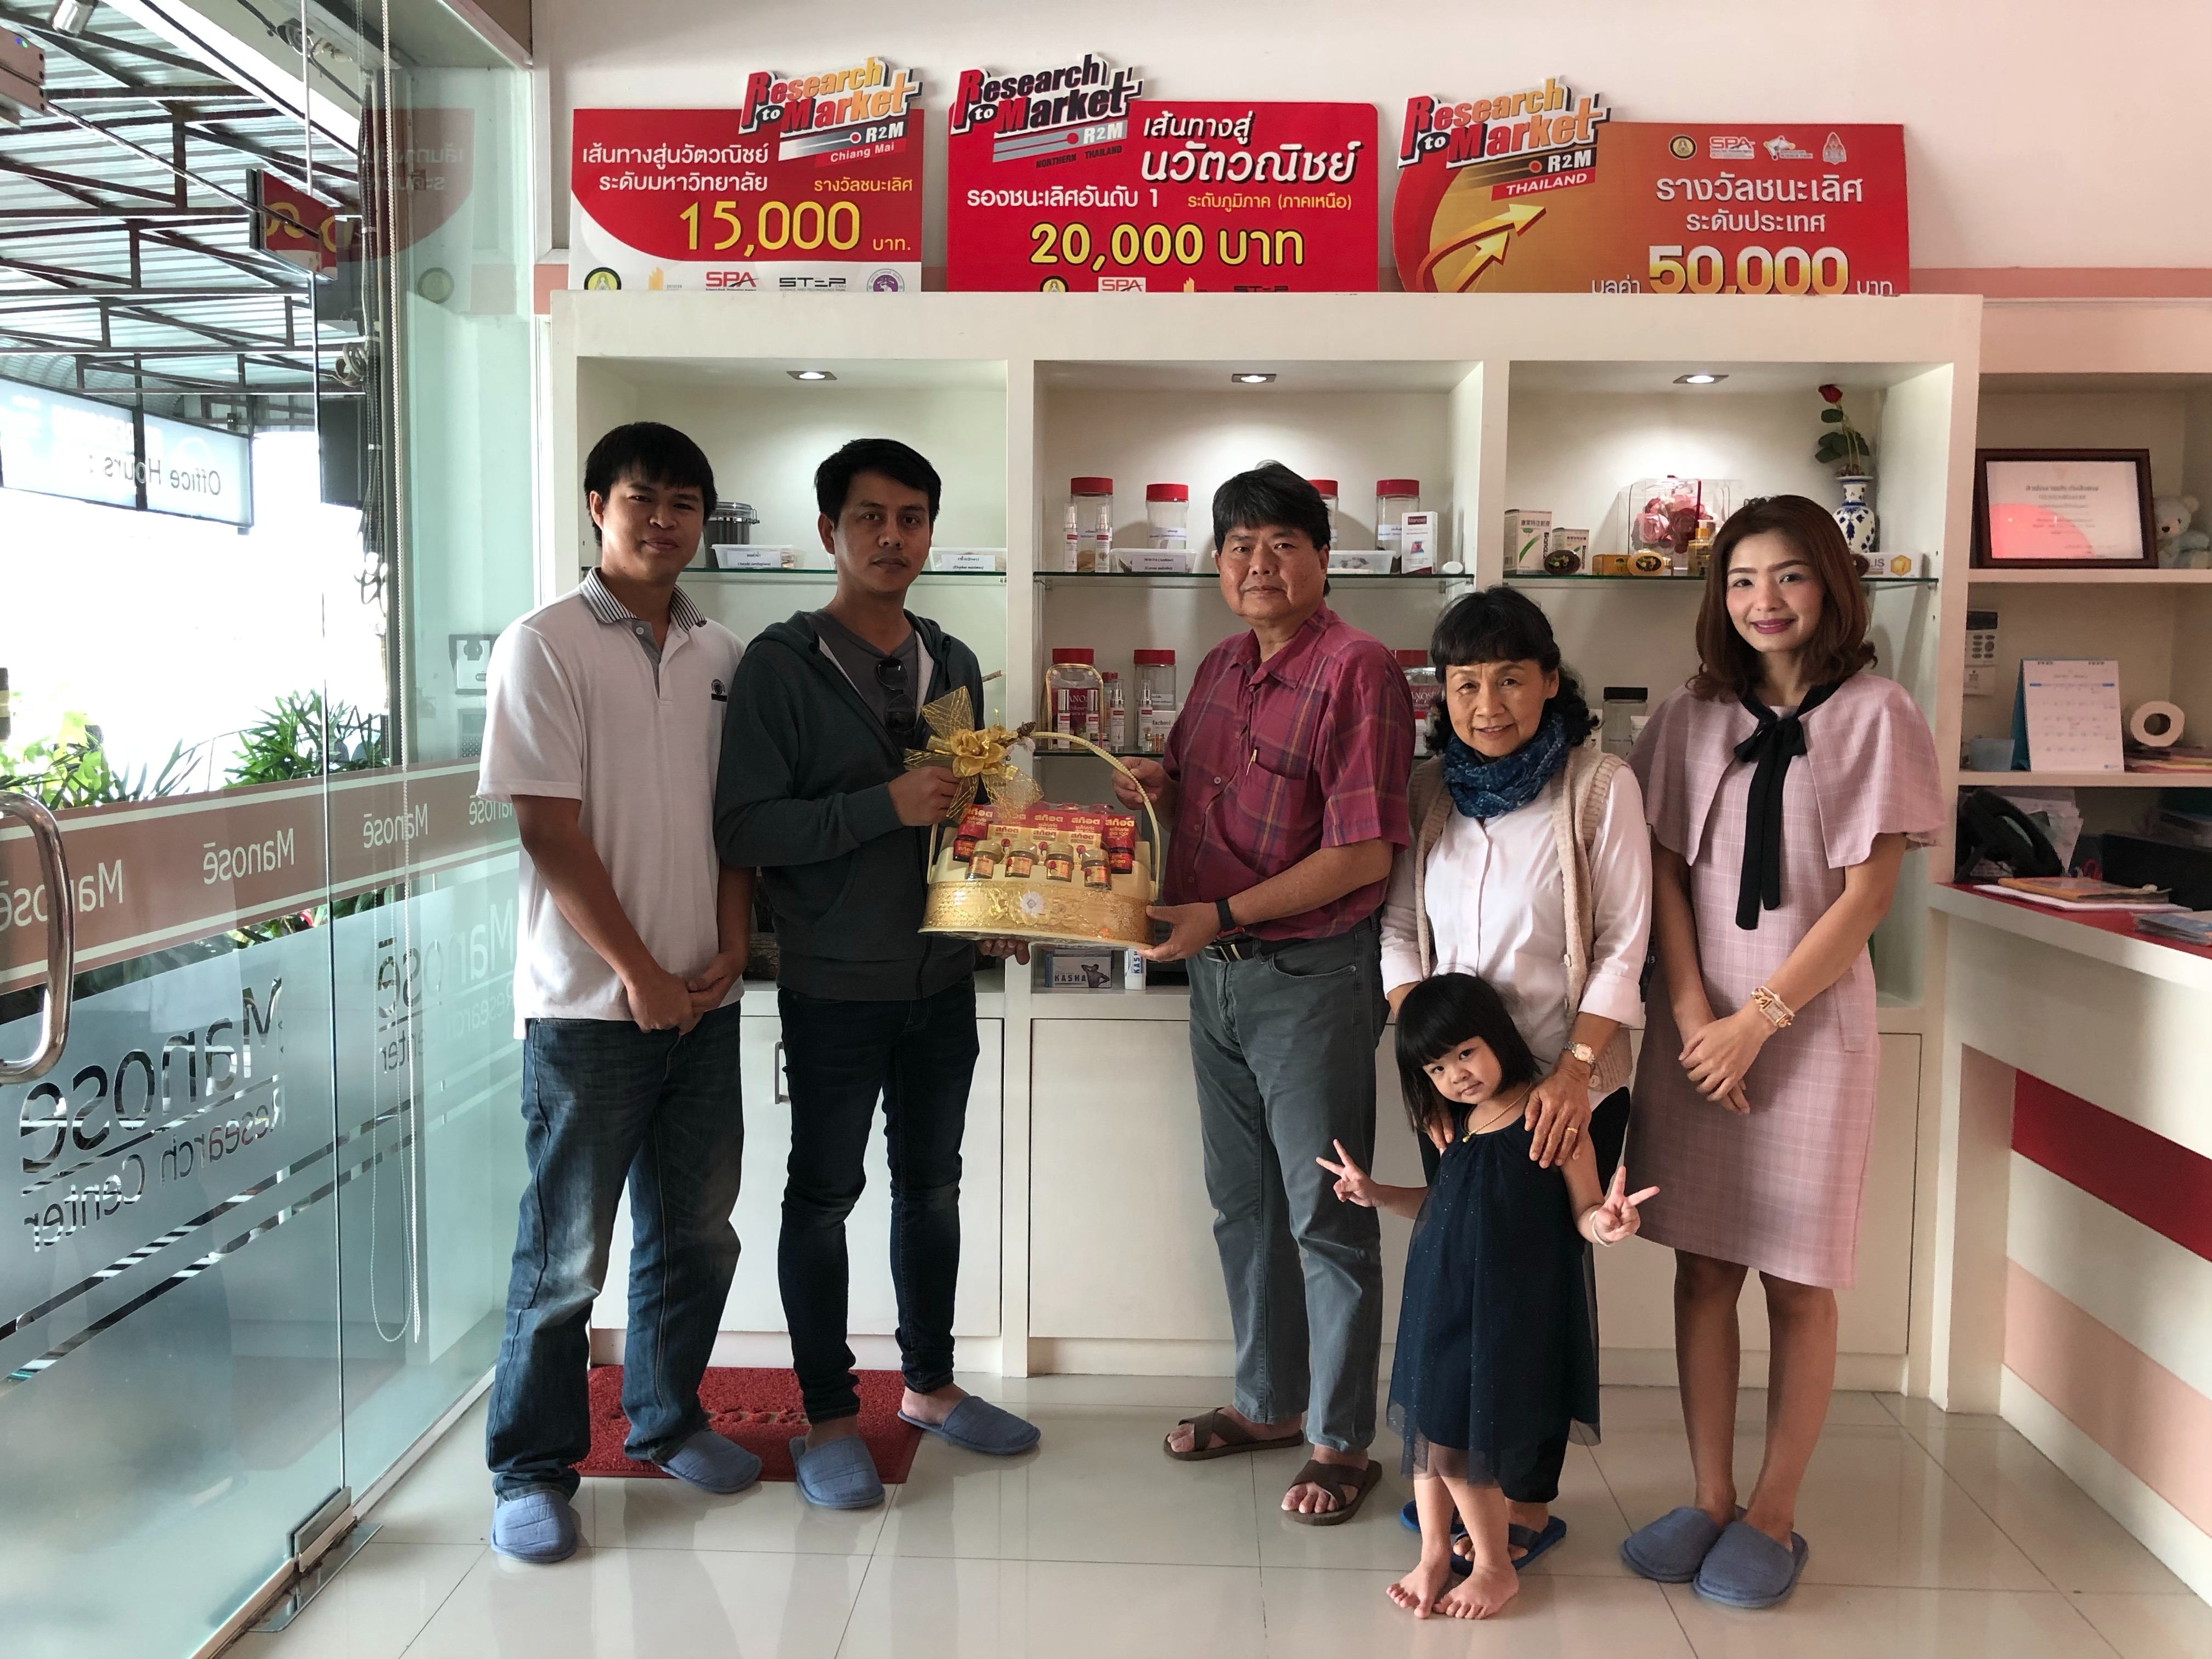 Master degree students, North-Chiang Mai University (NCU) have presented a New Year gift to the Executive Board of Manose Health and Beauty Research Center on the occasion of New Year 2019